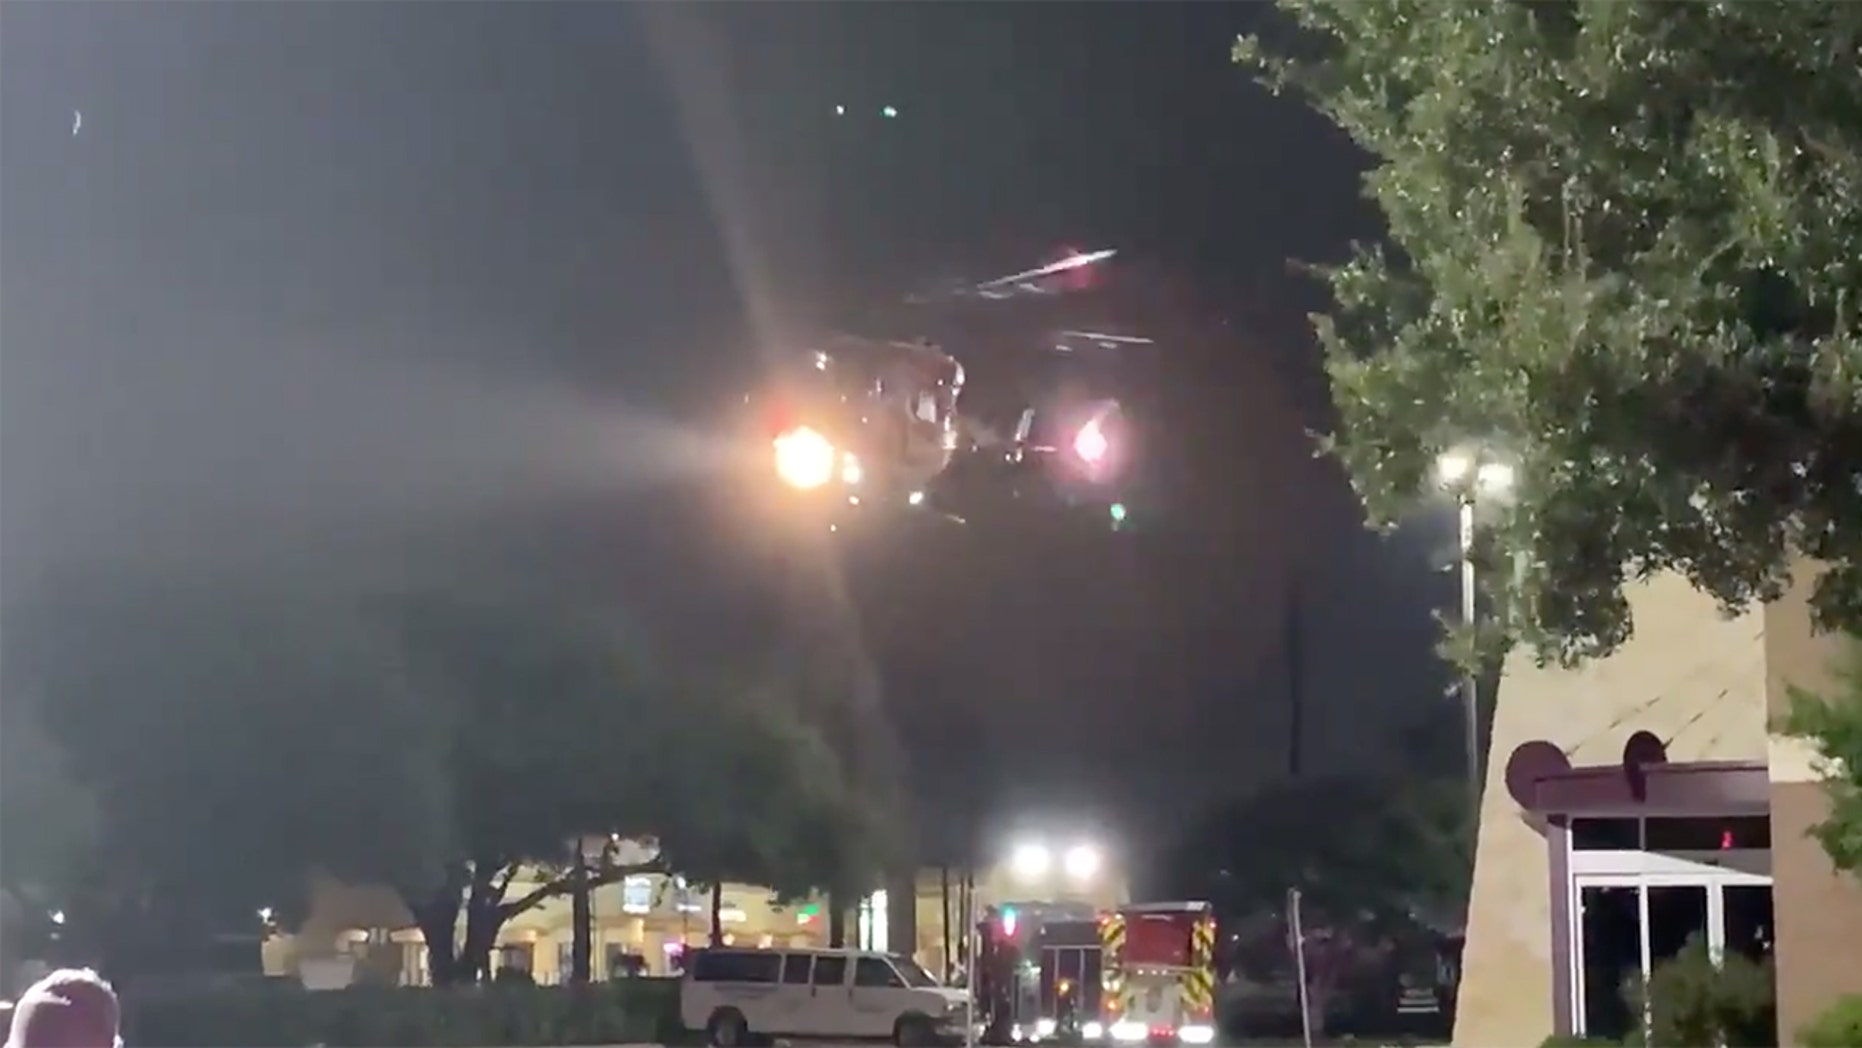 Screen image from video showing groom being airlifted to the hospital after being shot in the chest on his wedding day in Texas.